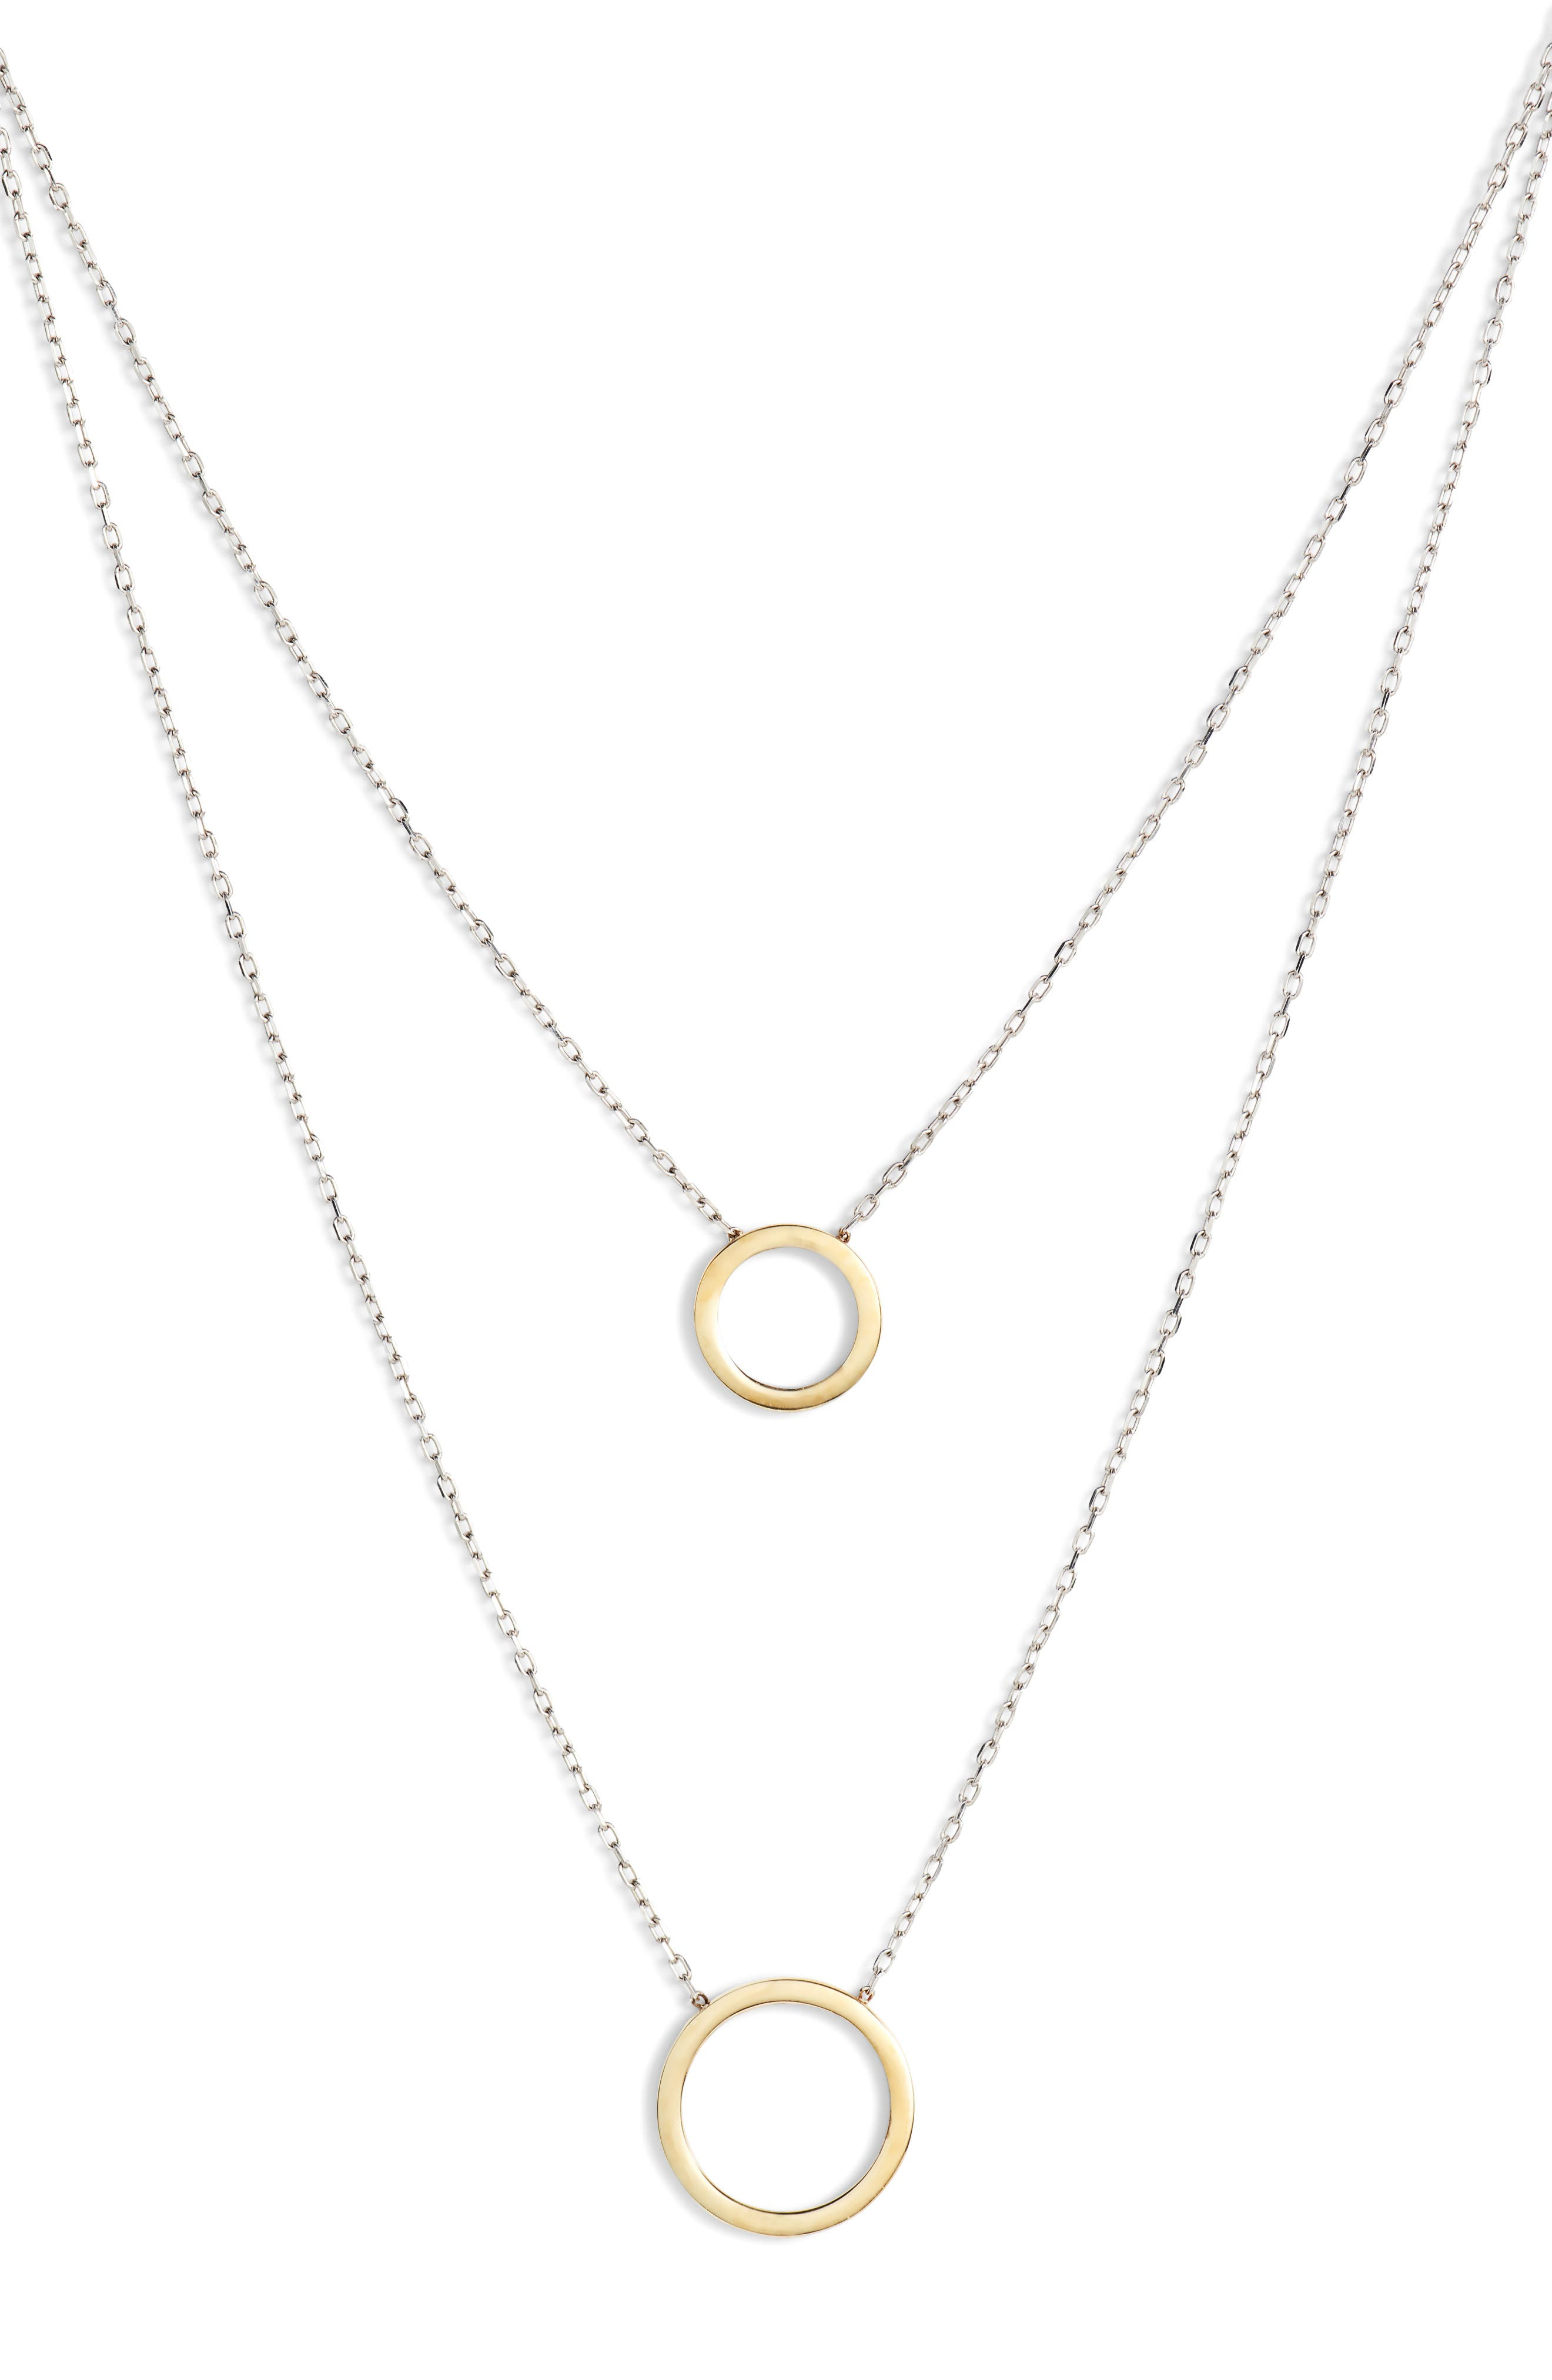 Ava Two Tone Open Circle Necklace,                         Main,                         color, Gold/ Silver